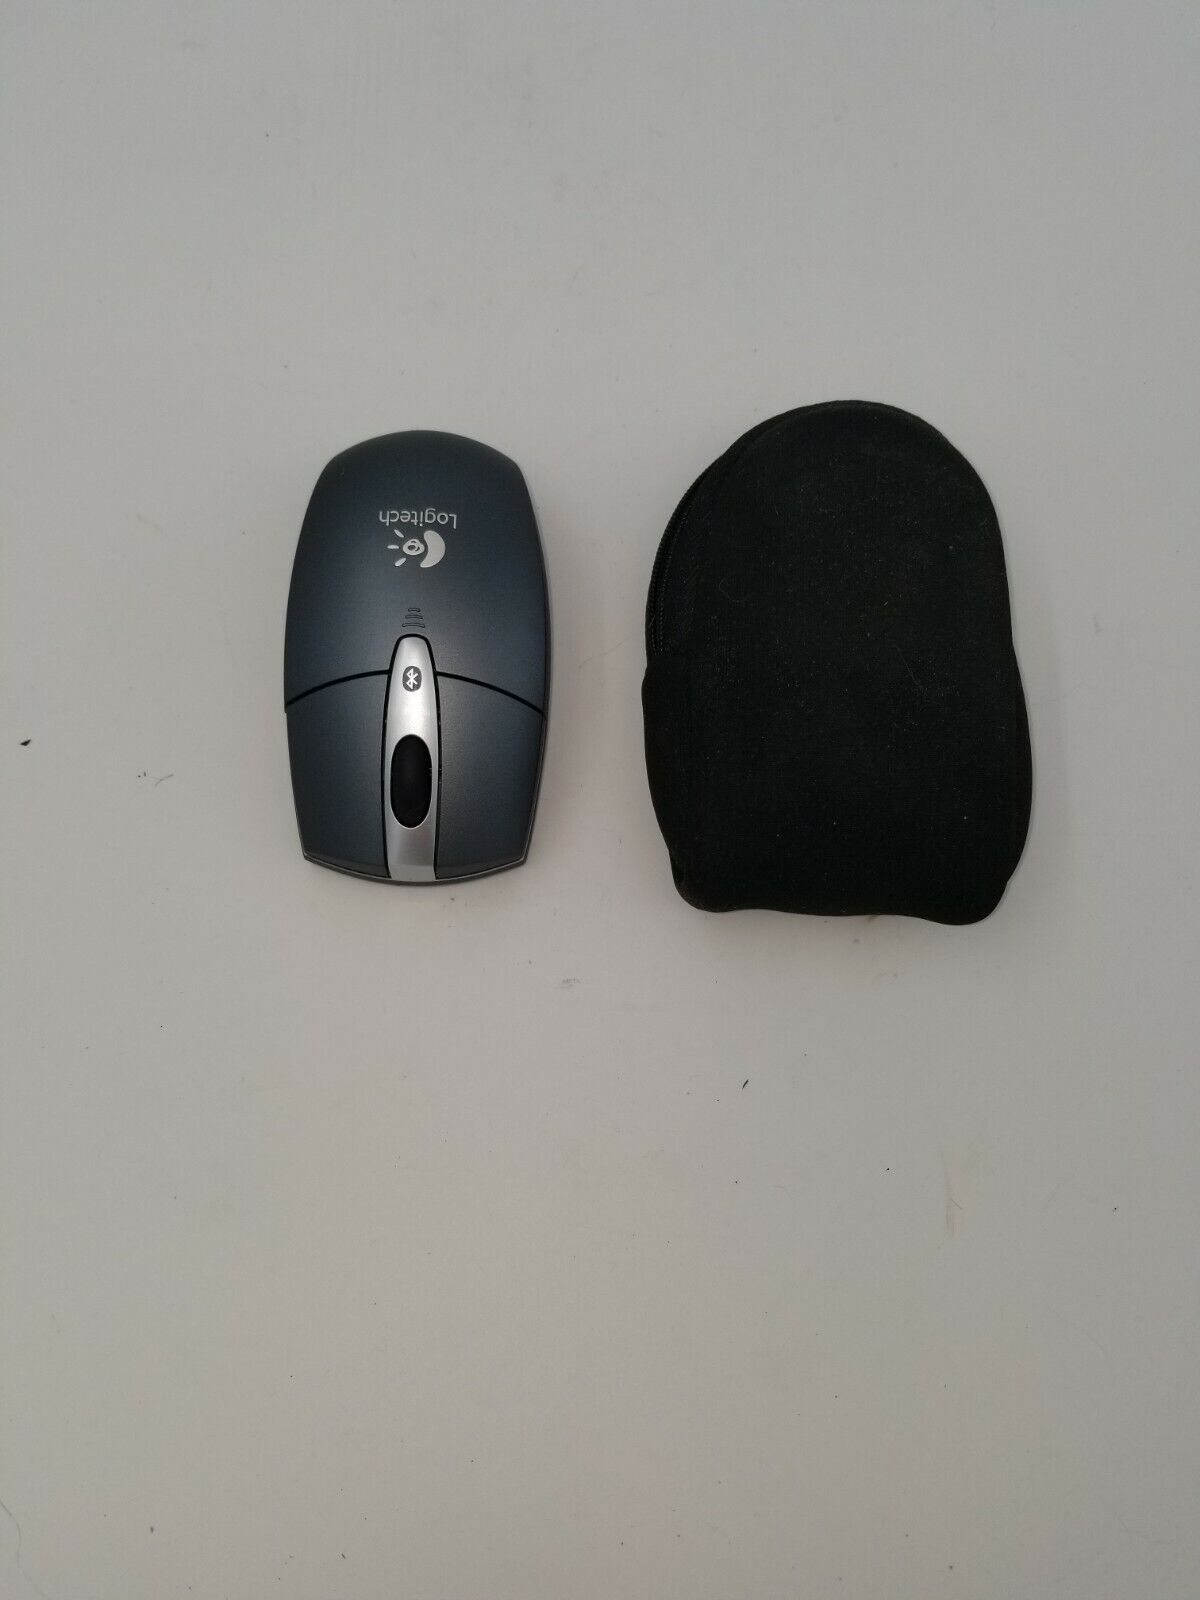 Logitech M-RBB93 Bluetooth WiFi Mouse With Case - $12.00